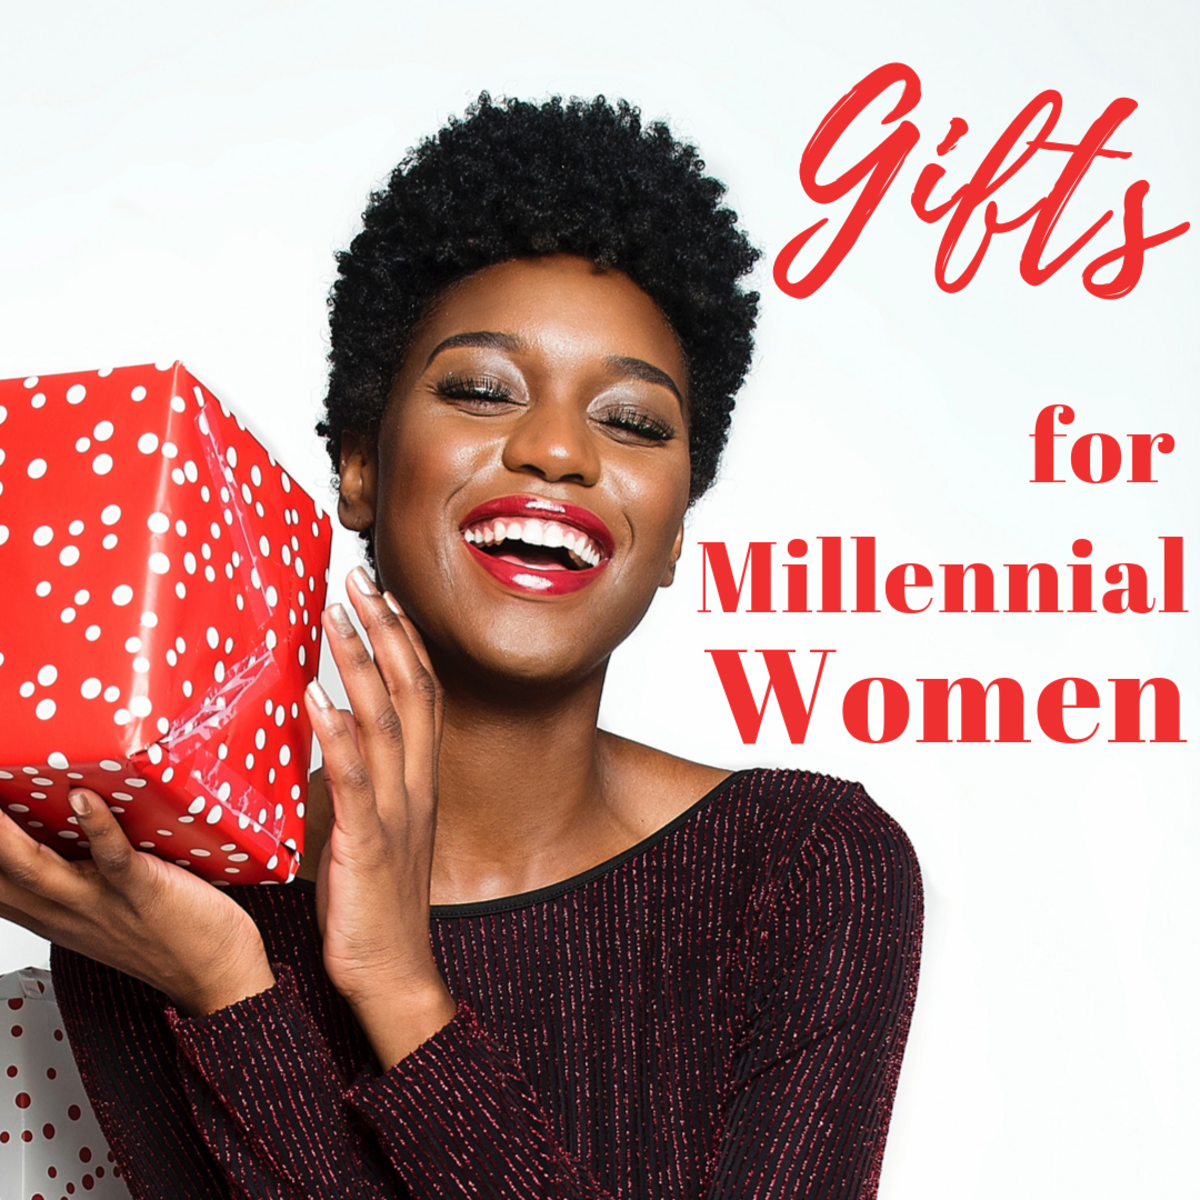 The Best Christmas Gifts for Young Women (By a Millennial)